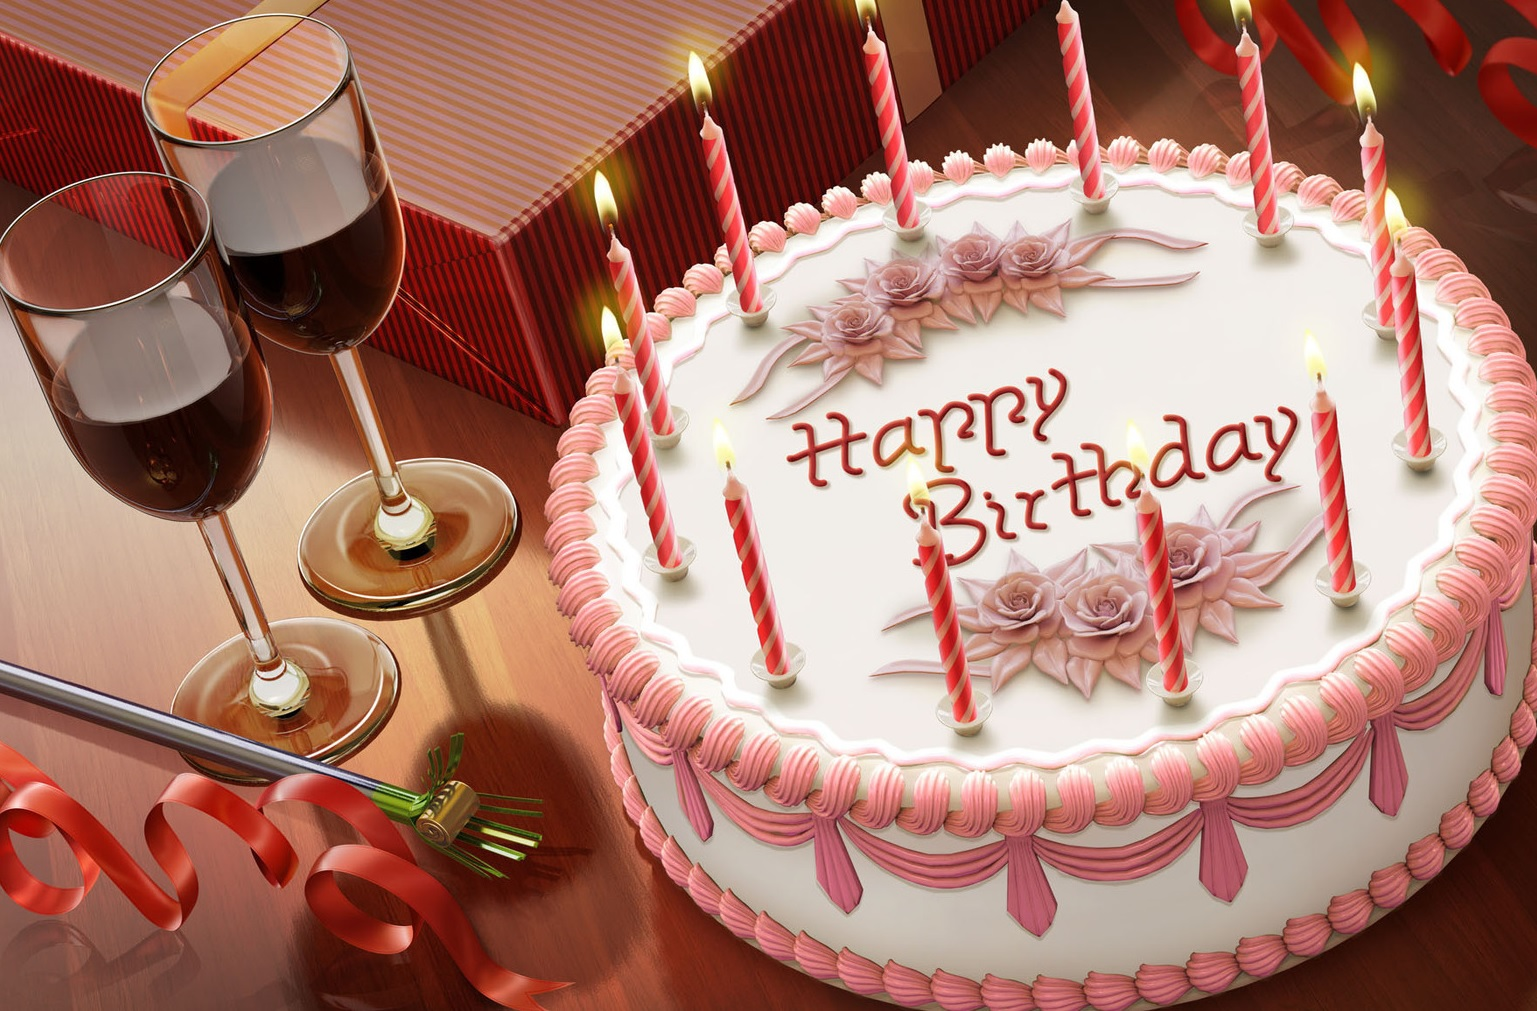 happy bday image download ; Free_happy_birthday_images_download1